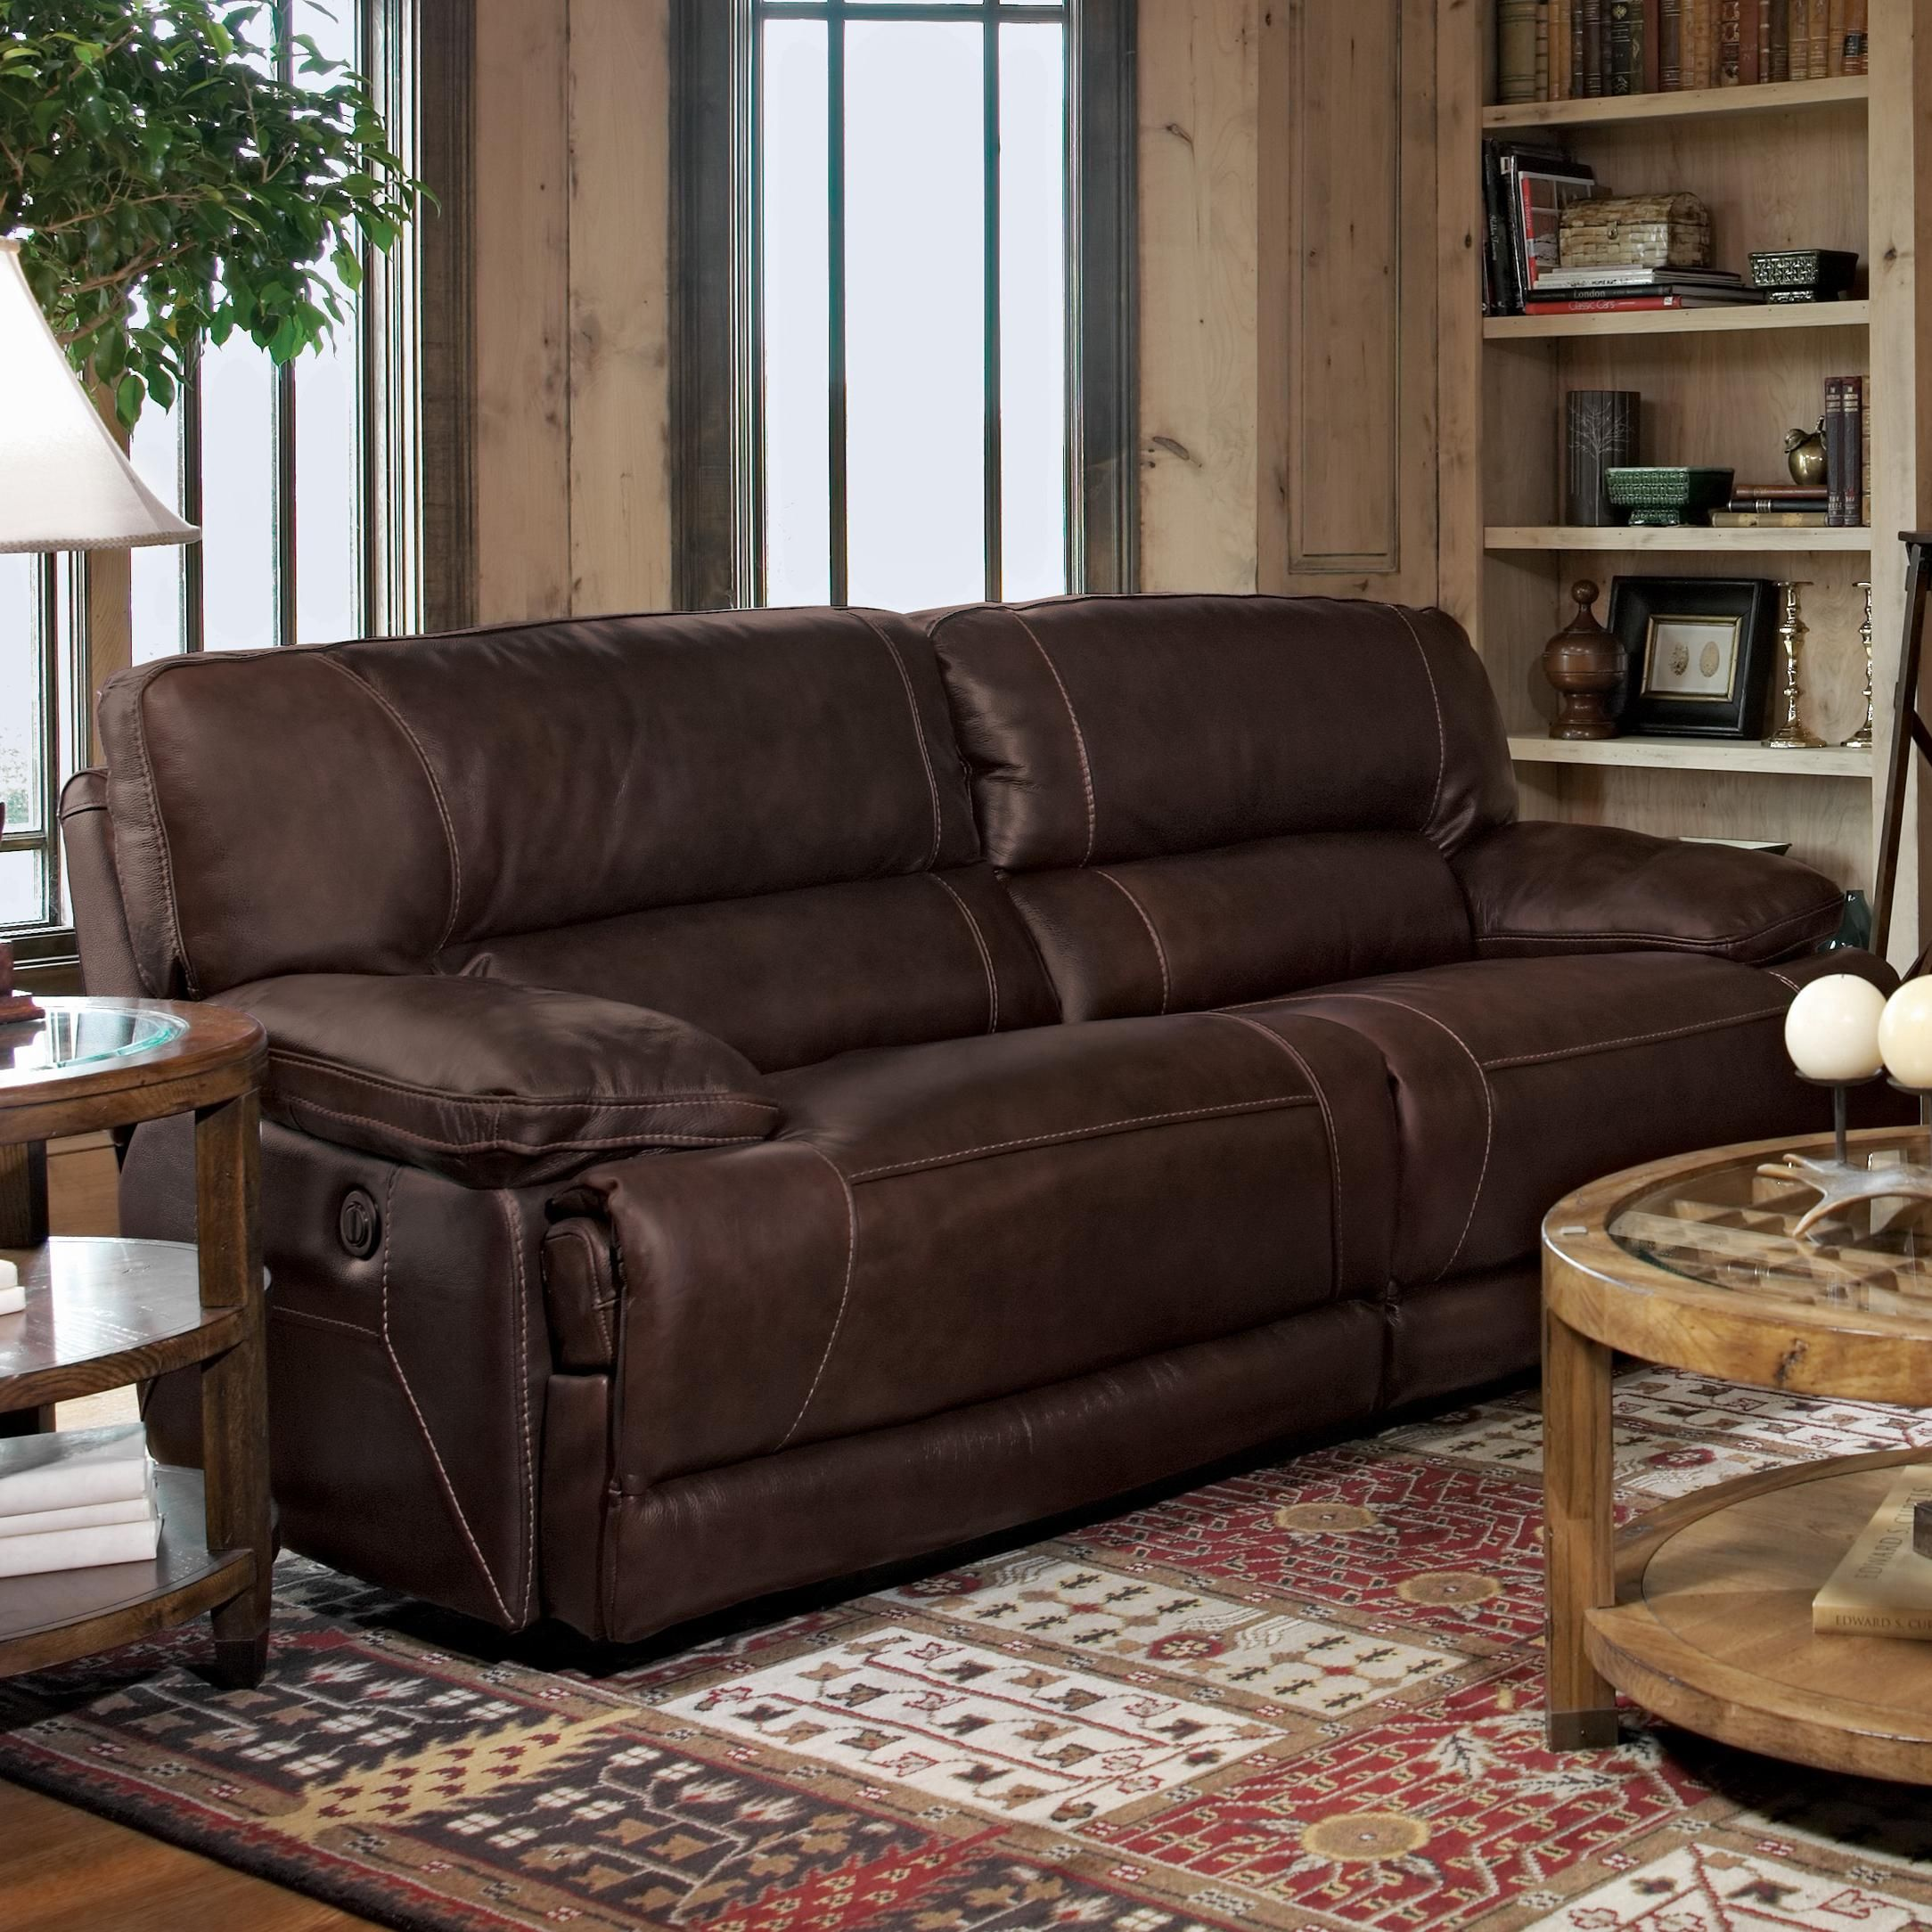 Shop for the Flexsteel Fleet Street Power Reclining Sofa at Dunk u0026 Bright Furniture - Your Syracuse Utica Binghamton Furniture u0026 Mattress Store & Fleet Street Power Reclining Sofa by Flexsteel | Fabulous ... islam-shia.org